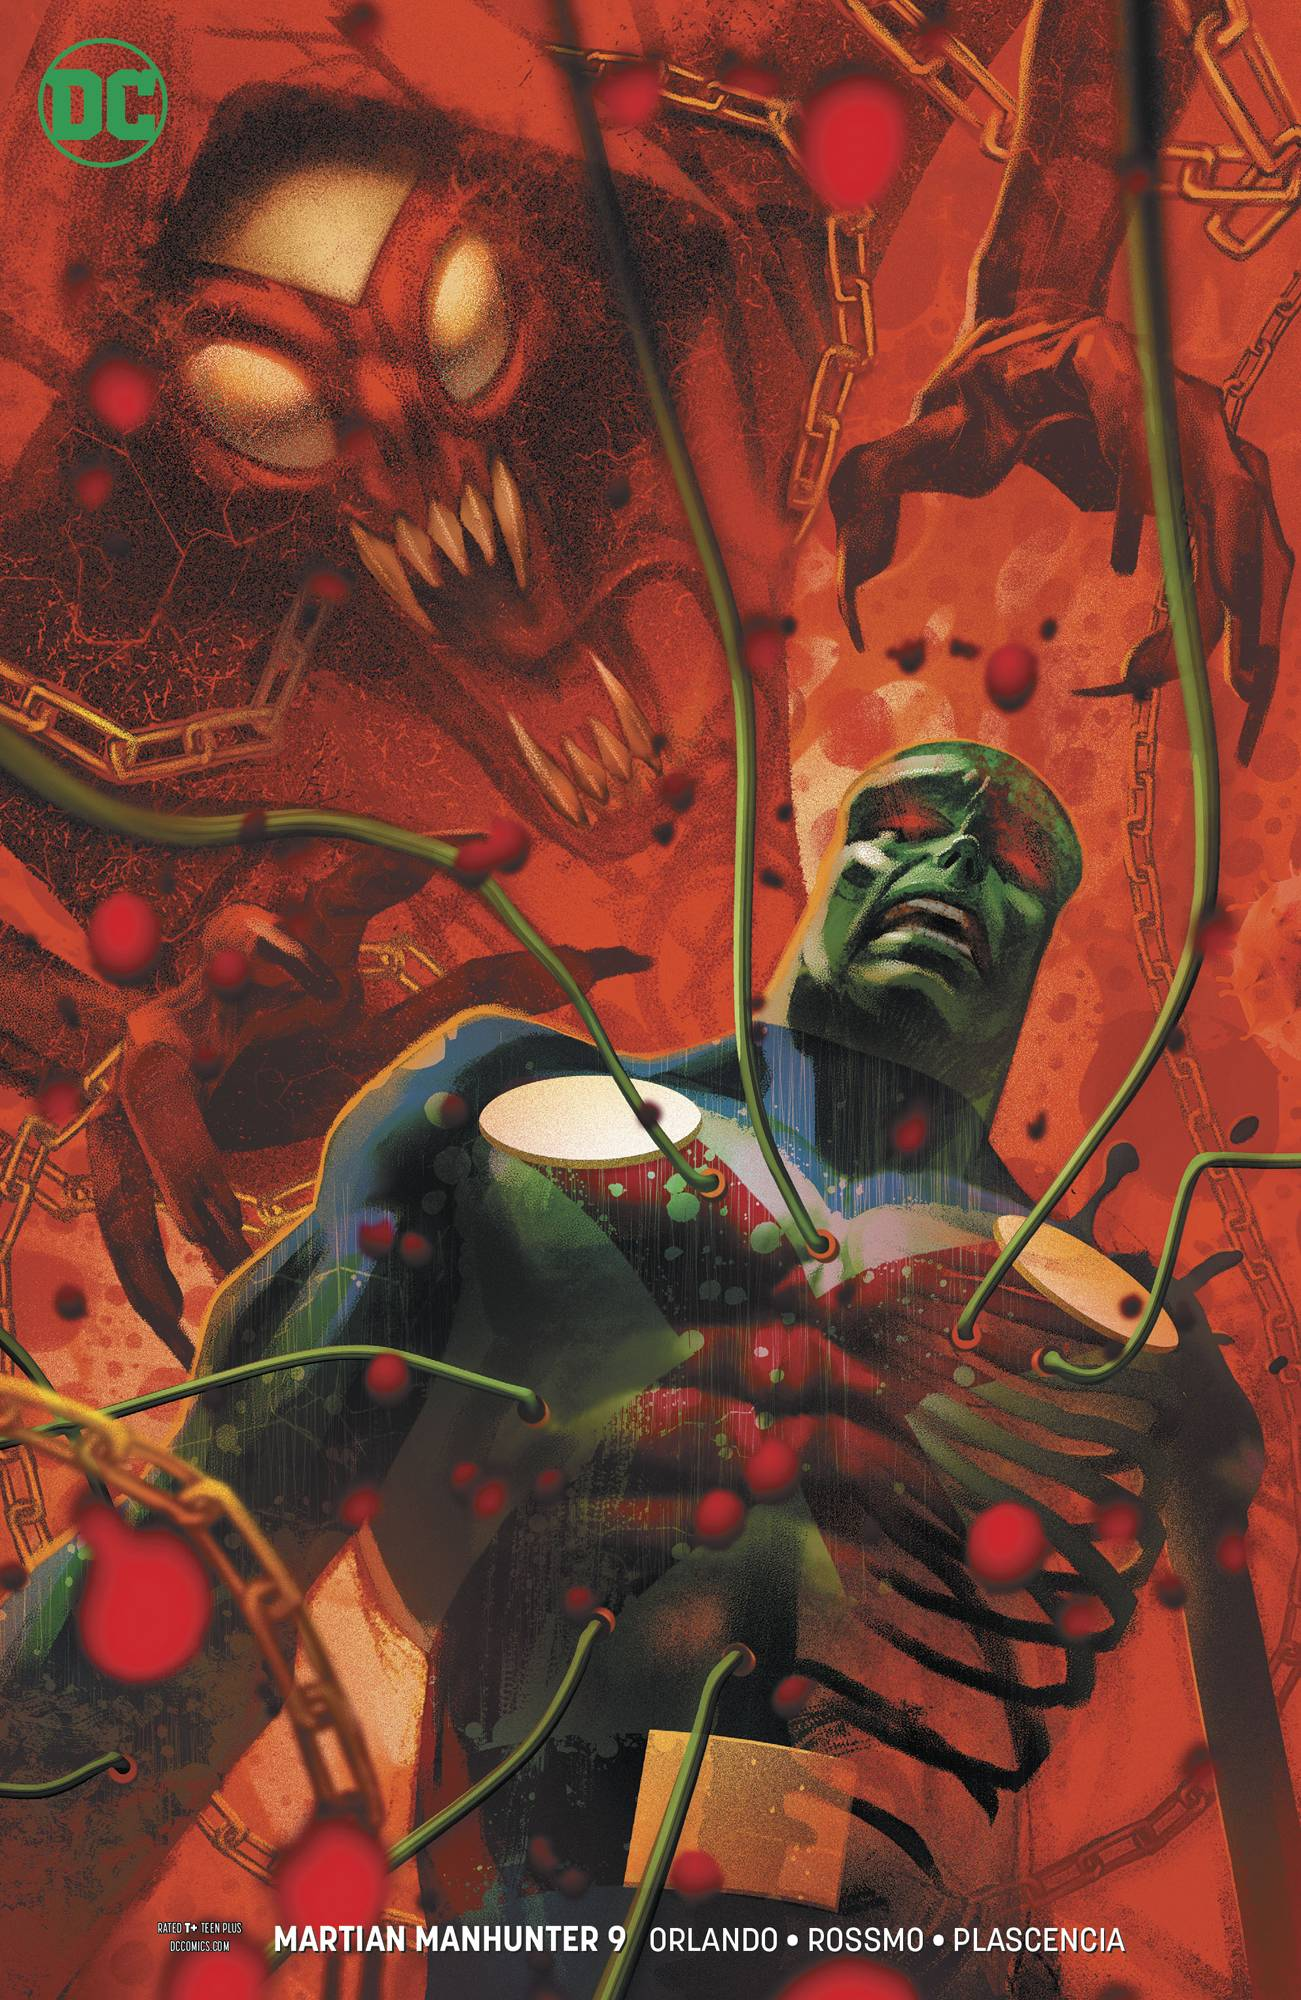 MARTIAN MANHUNTER #9 (OF 12) VAR ED